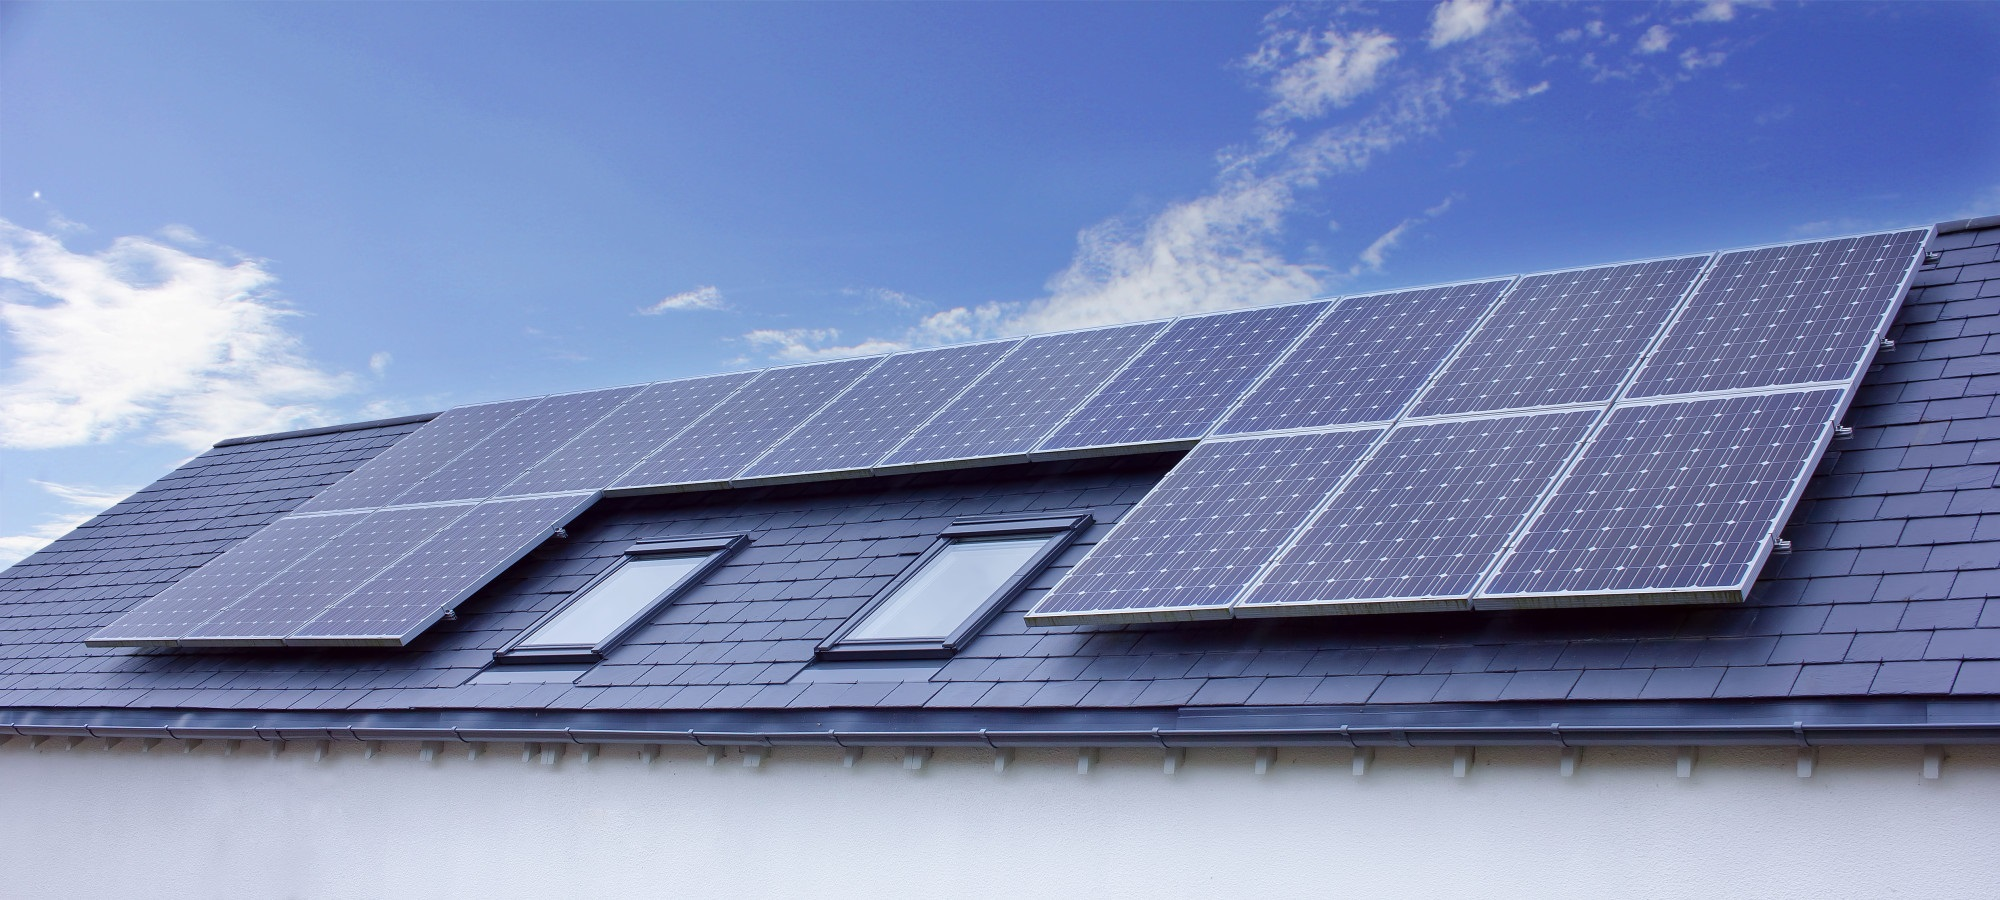 How Long Will Solar Panels Last? A Guide for Homeowners